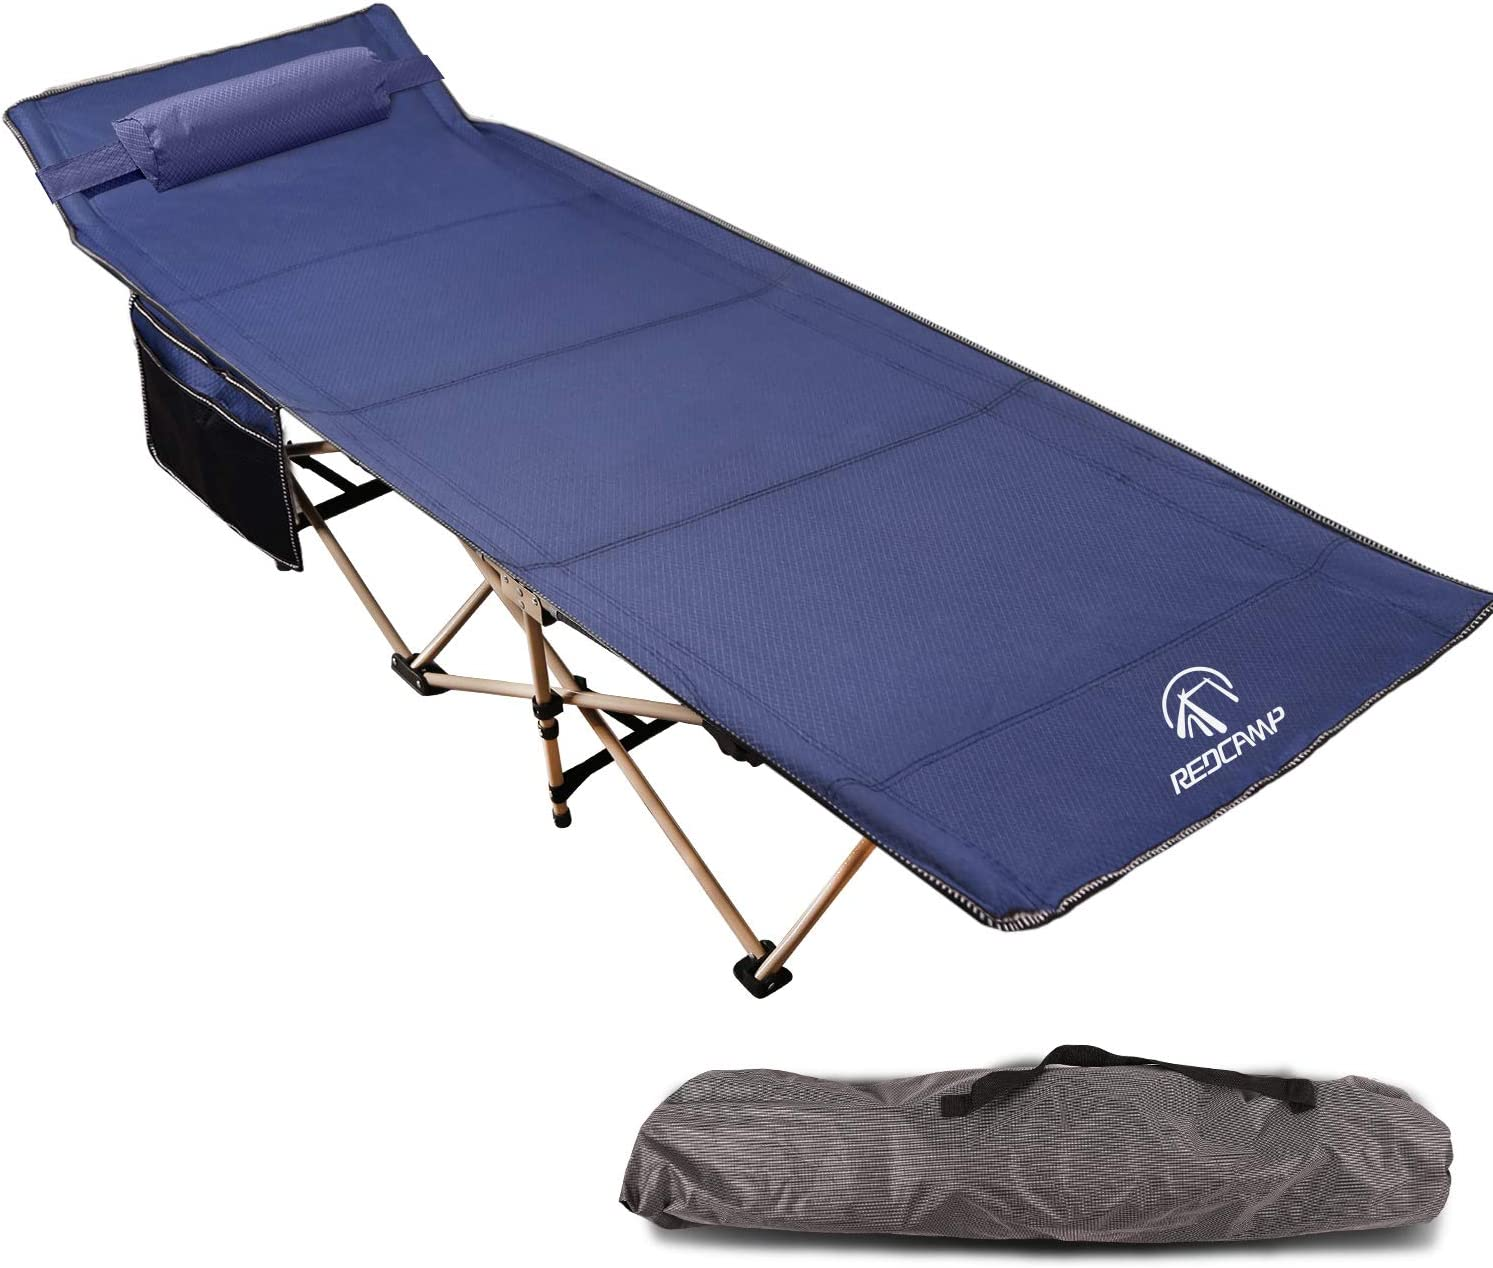 REDCAMP Folding Camping Cot for Adults, Double Layer Oxford Heavy Duty Wide Camp Cot for Sleeping with Pillow and Carry Bag, Blue and Grey